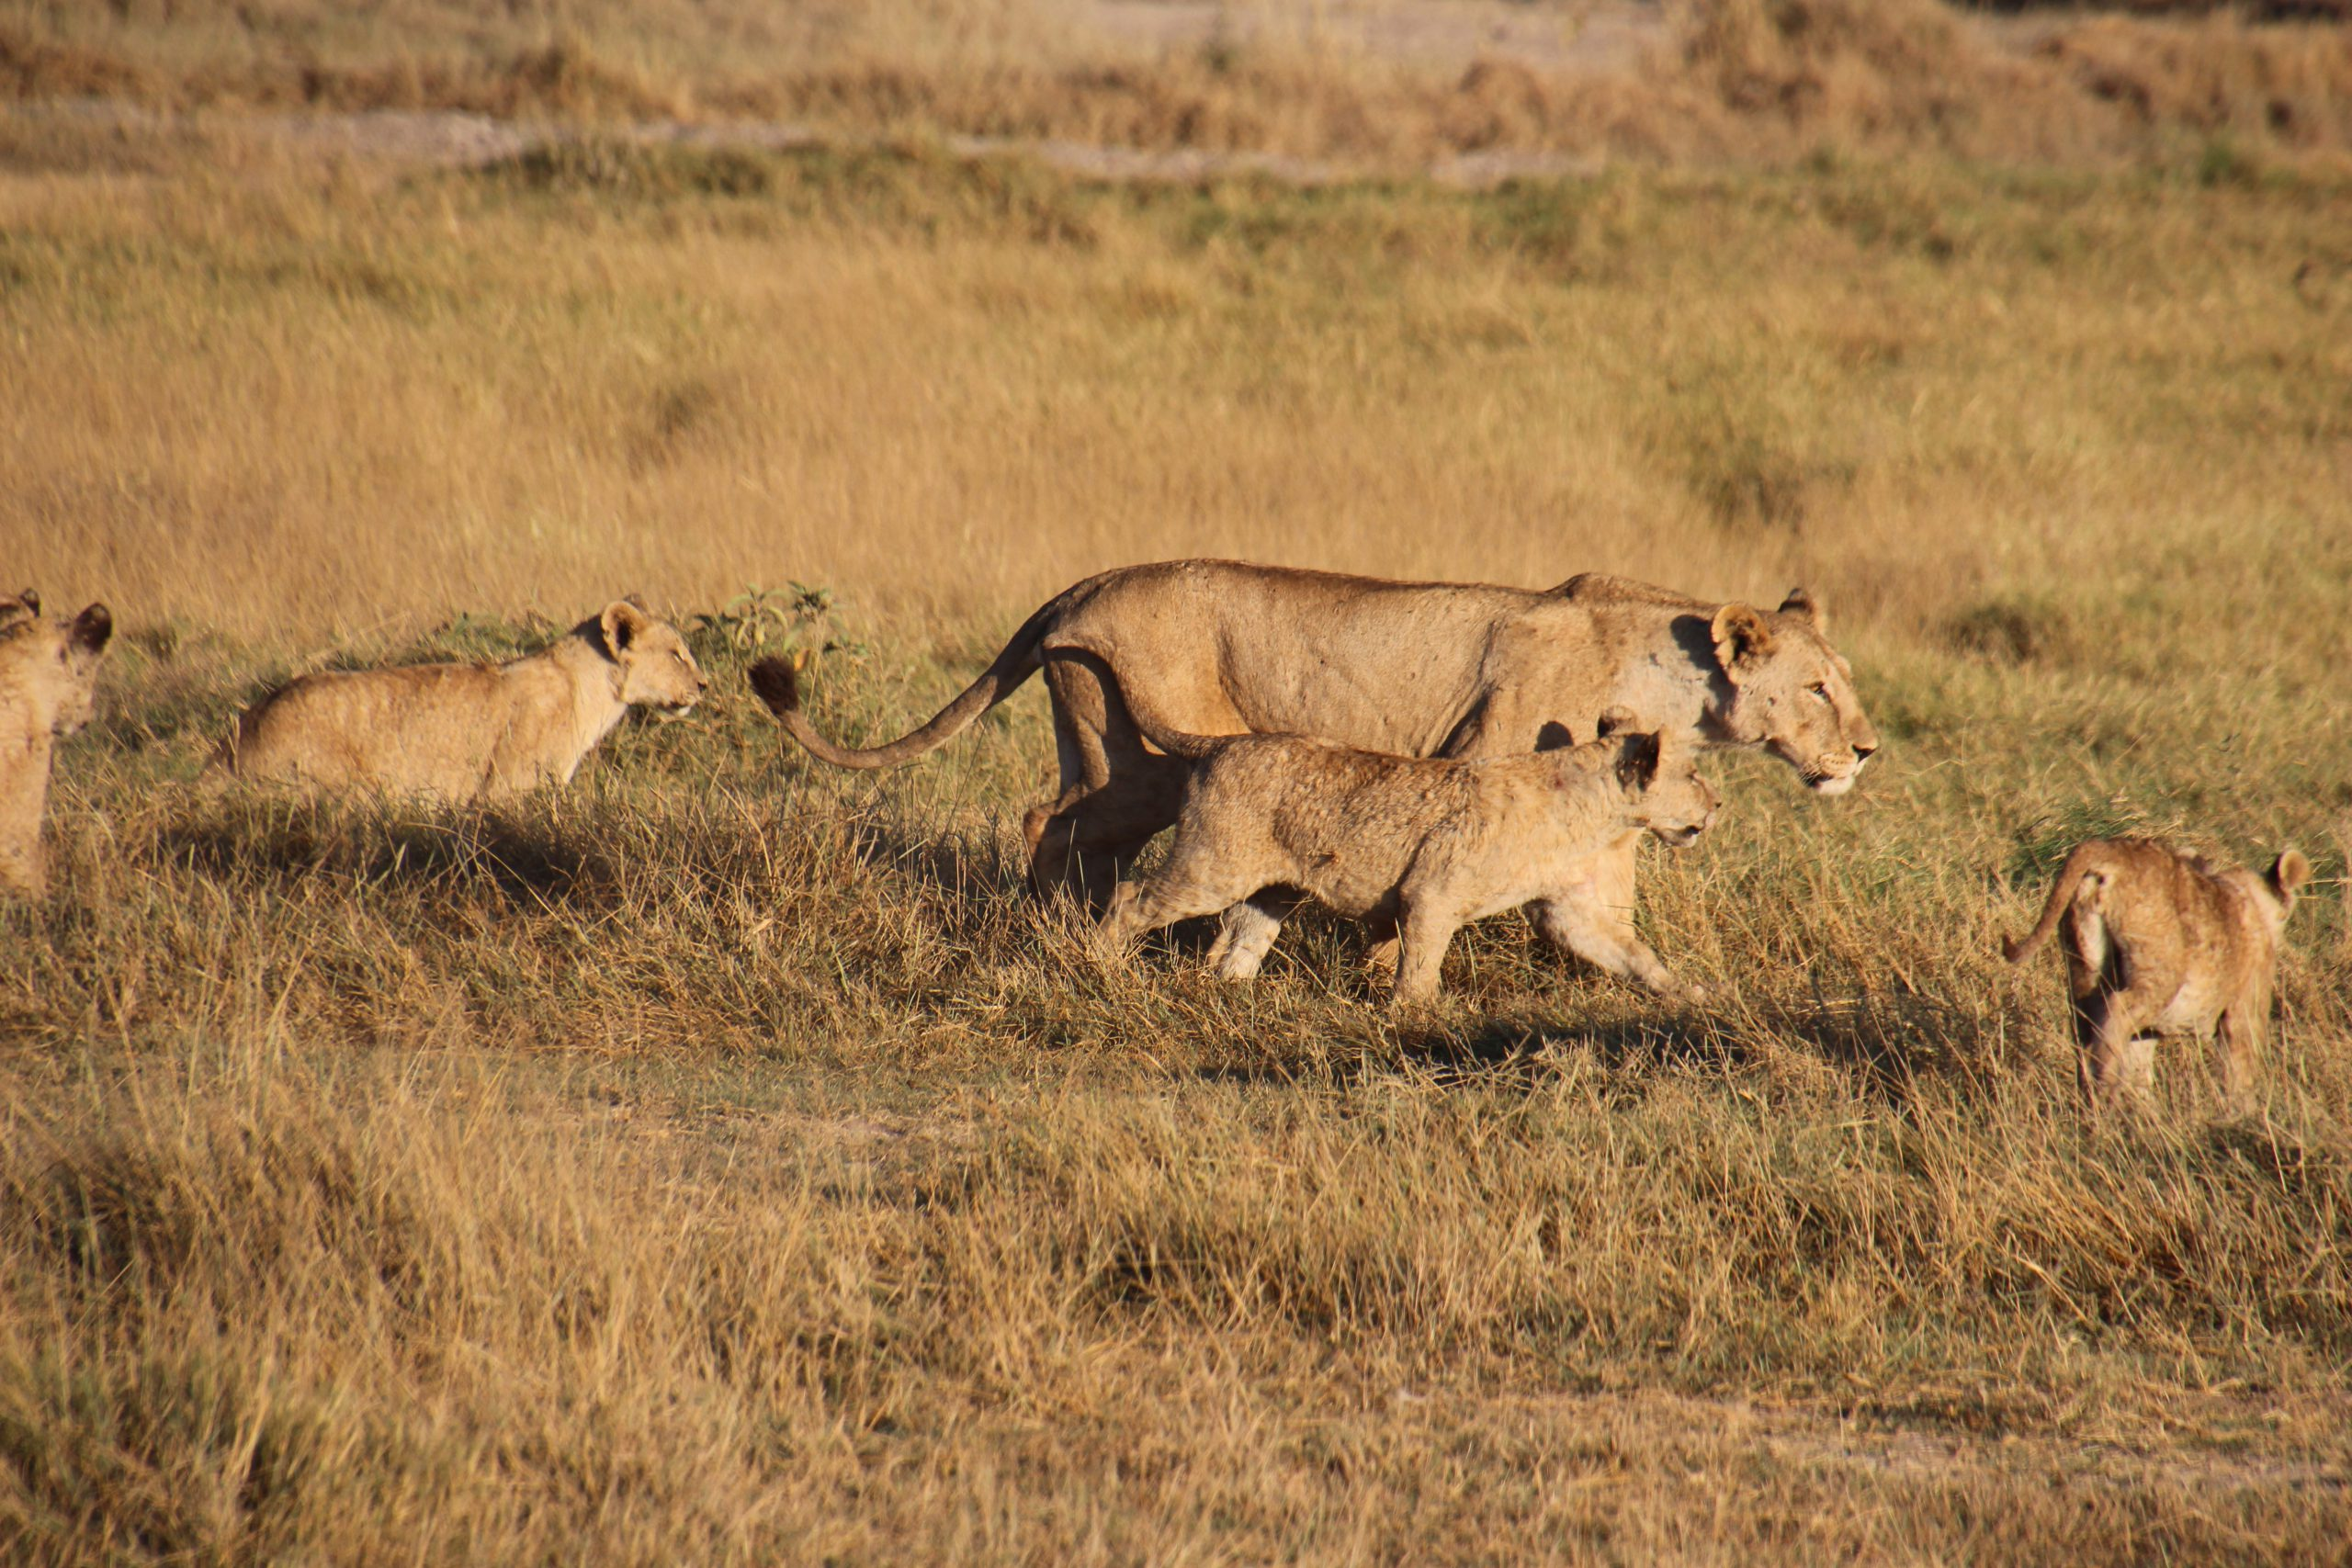 safari-in-kenia-amboseli-national-park_13